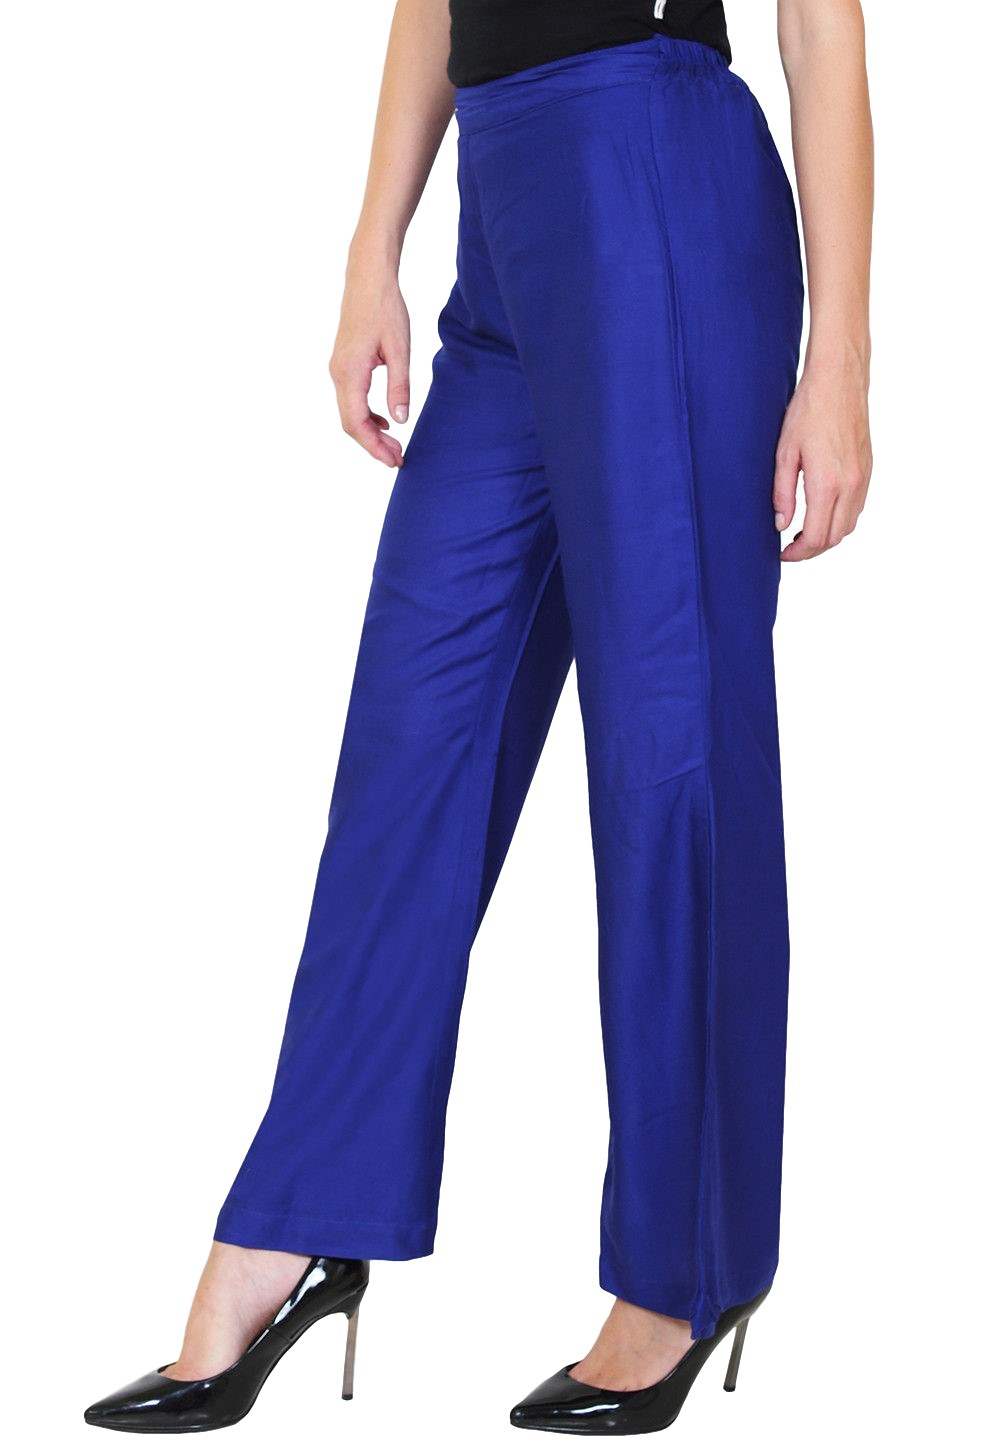 Straight Fit Bootcut Trousers in Royal Blue